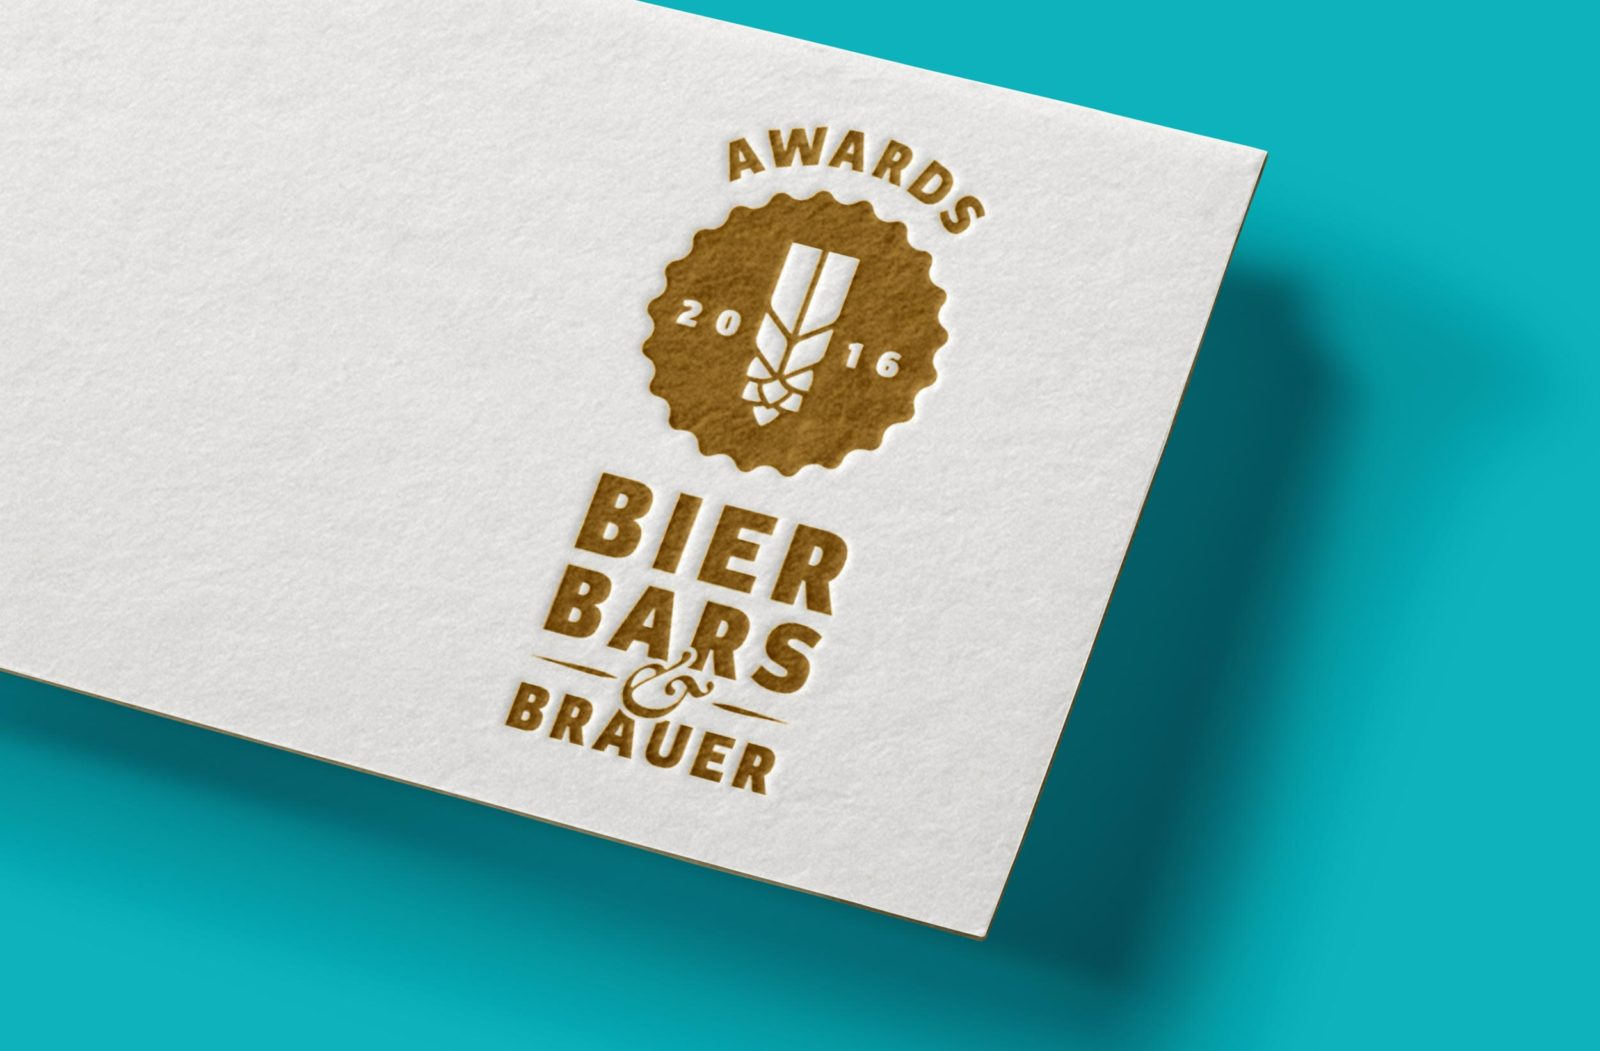 Logodesign, Corporate Design, Bier, Bars & Brauer